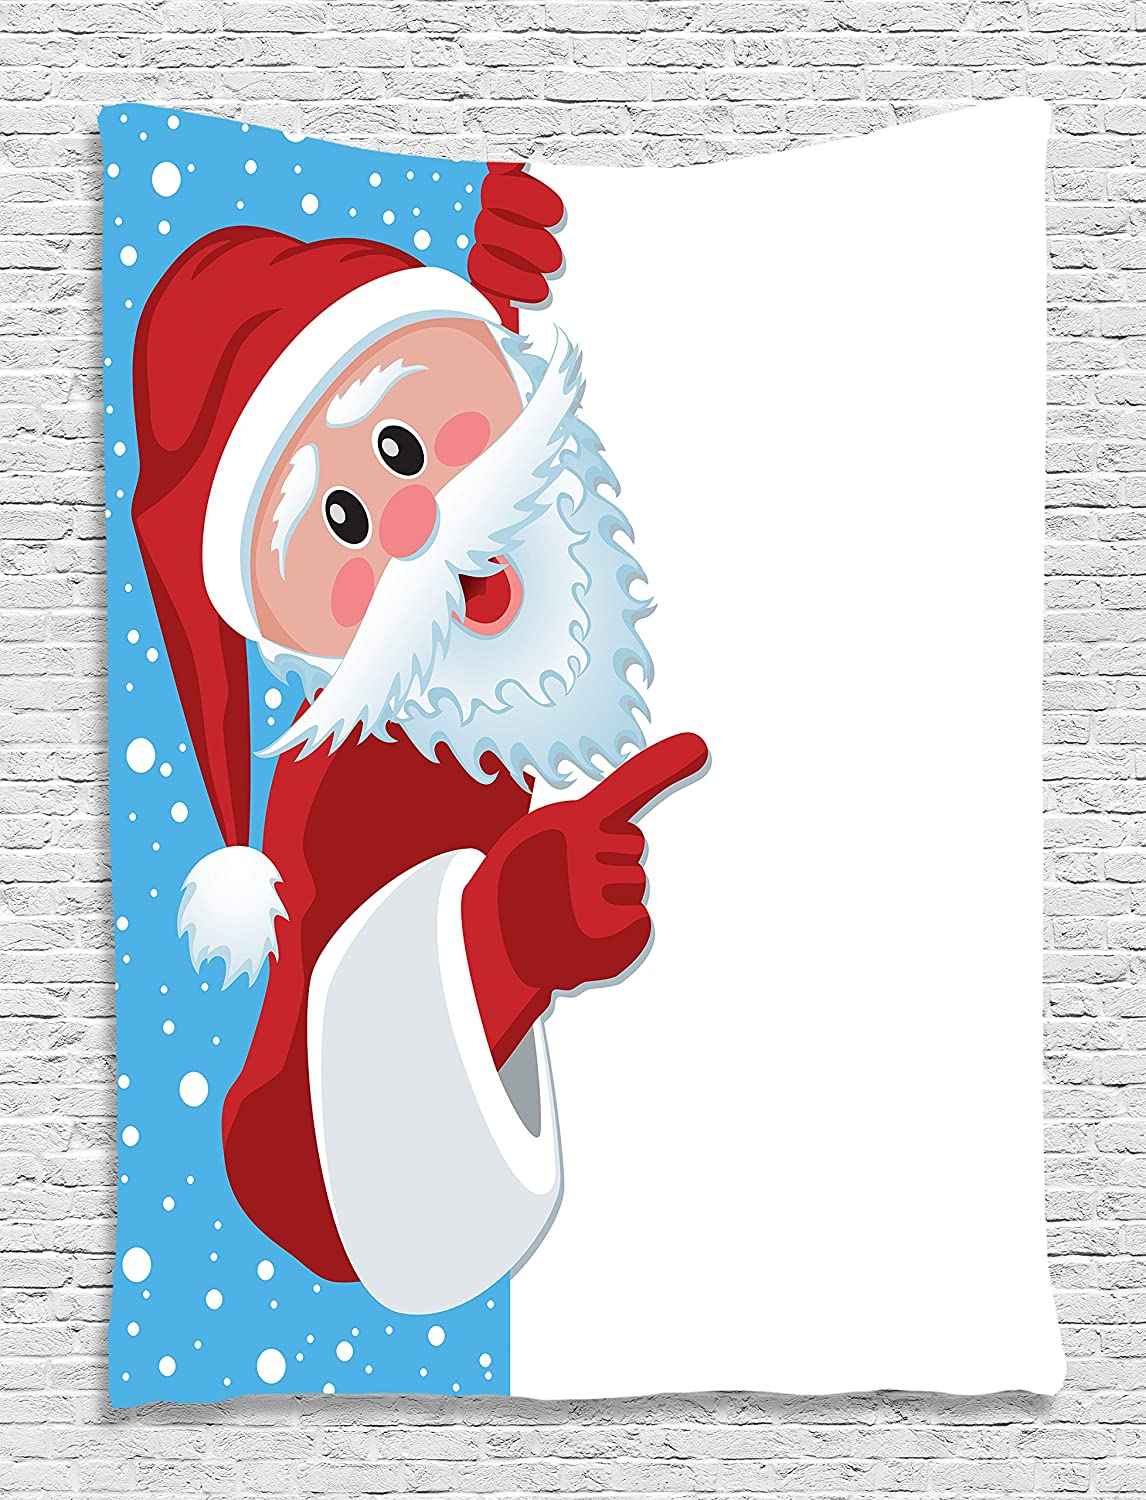 Machine Washable 40 W x 60 L One of a Kind Christmas Santa Claus Sky Snow Holiday Digital Printed Tapestry Wall Hanging Wall Living Room // Bedroom // Dorm Decor Silky Satin Blue Red White